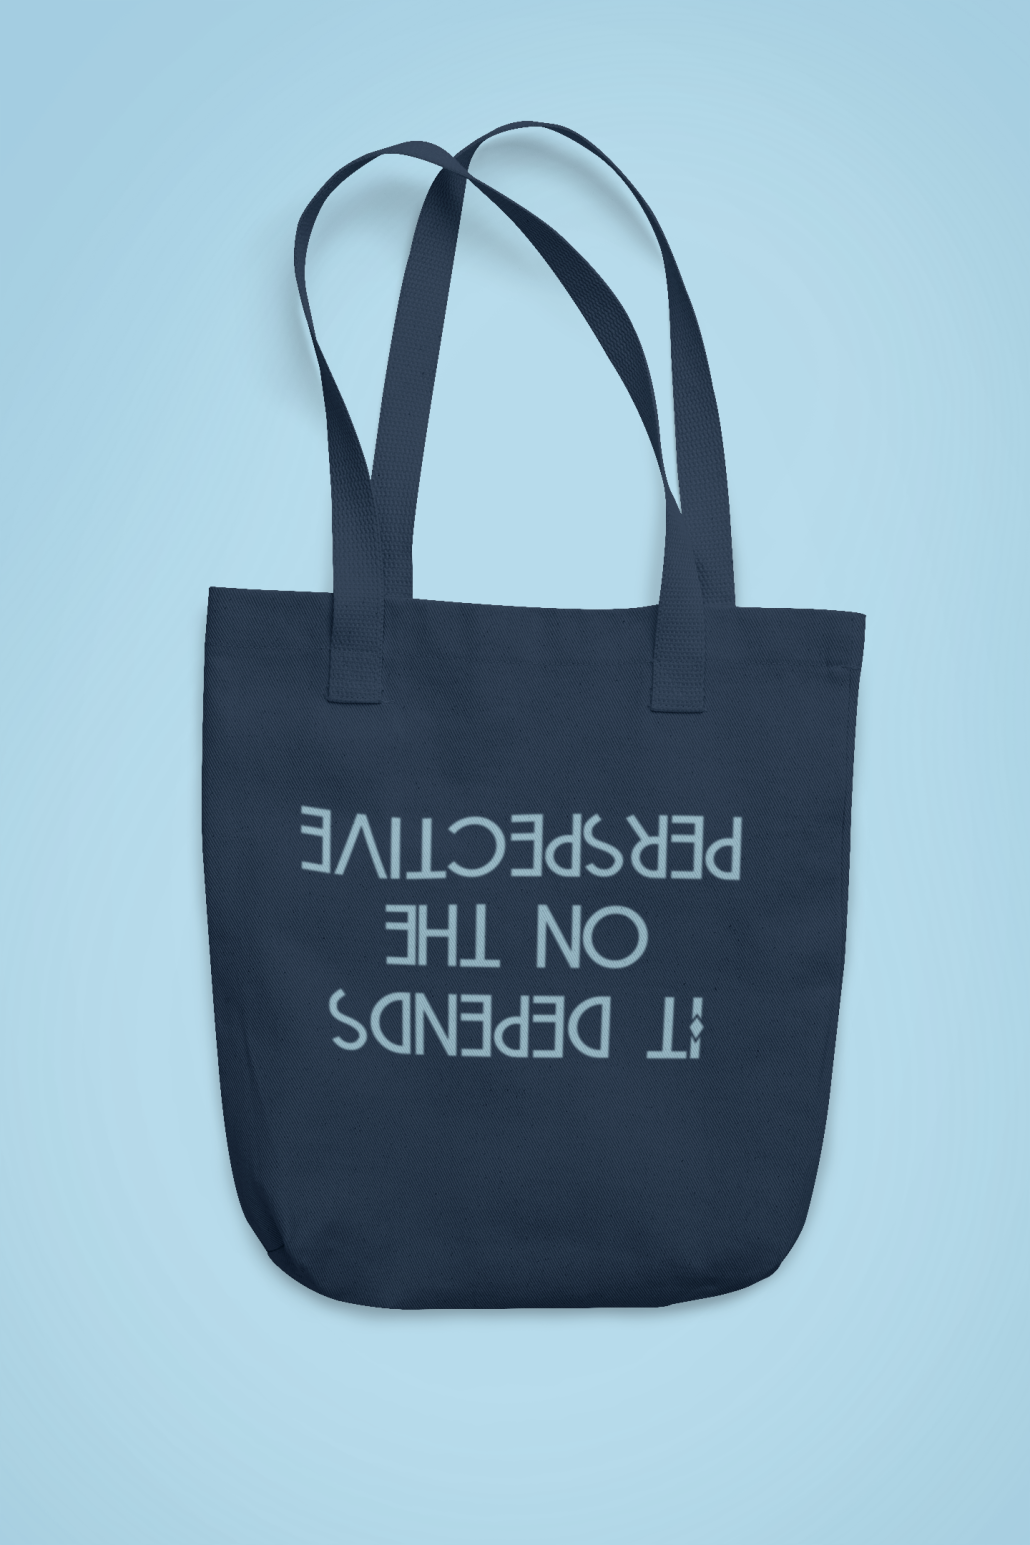 Customized tote bag as a Christmas Gift